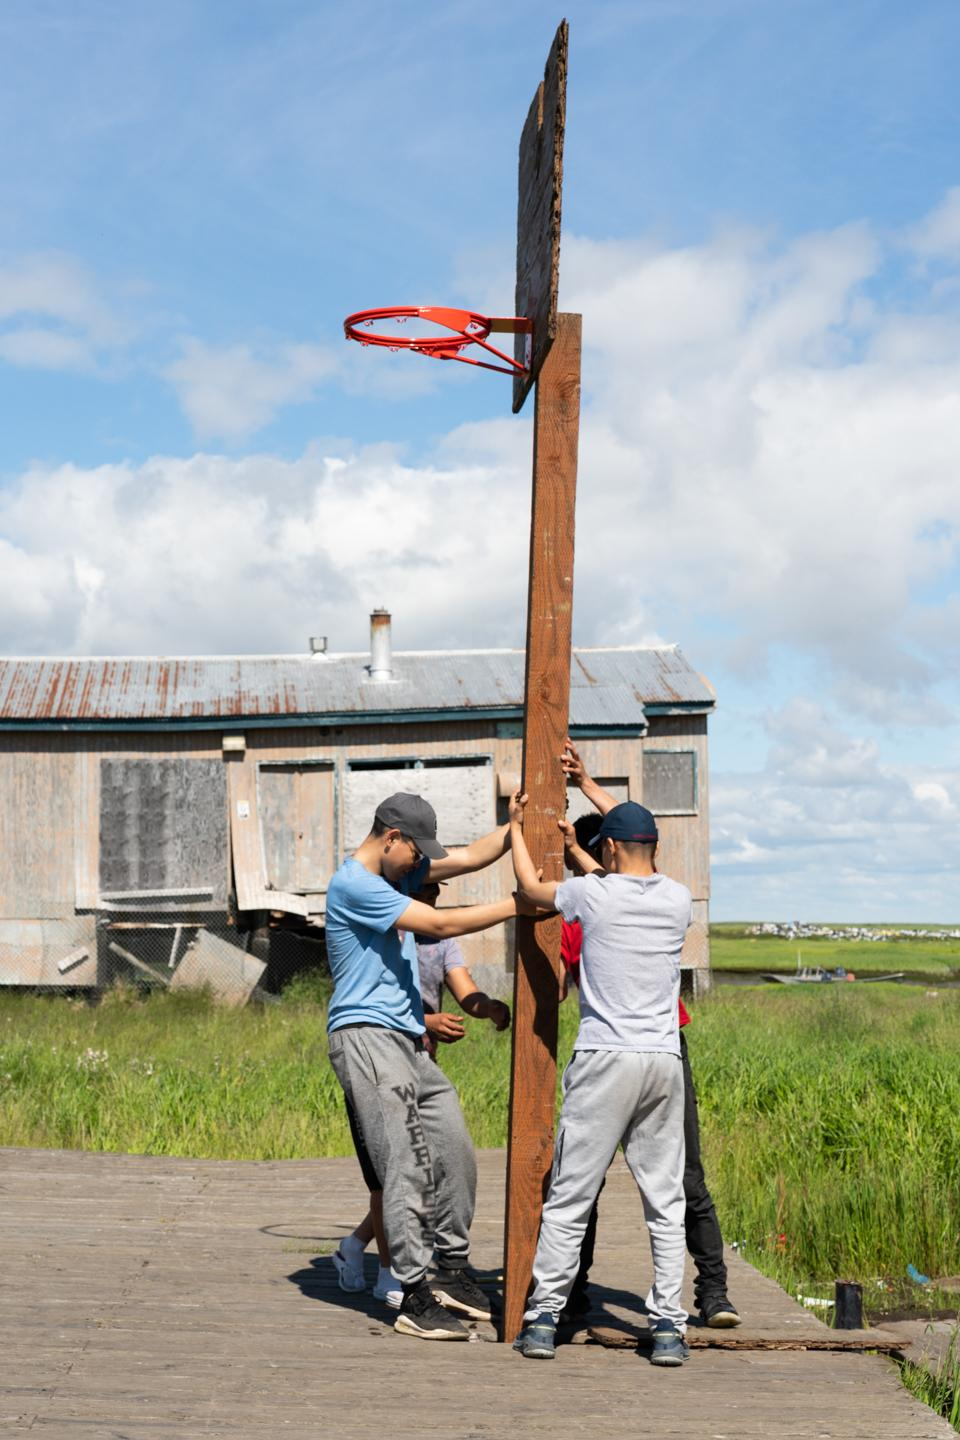 Youth fix their basketball court in Newtok, Alaska on July 12, 2020.